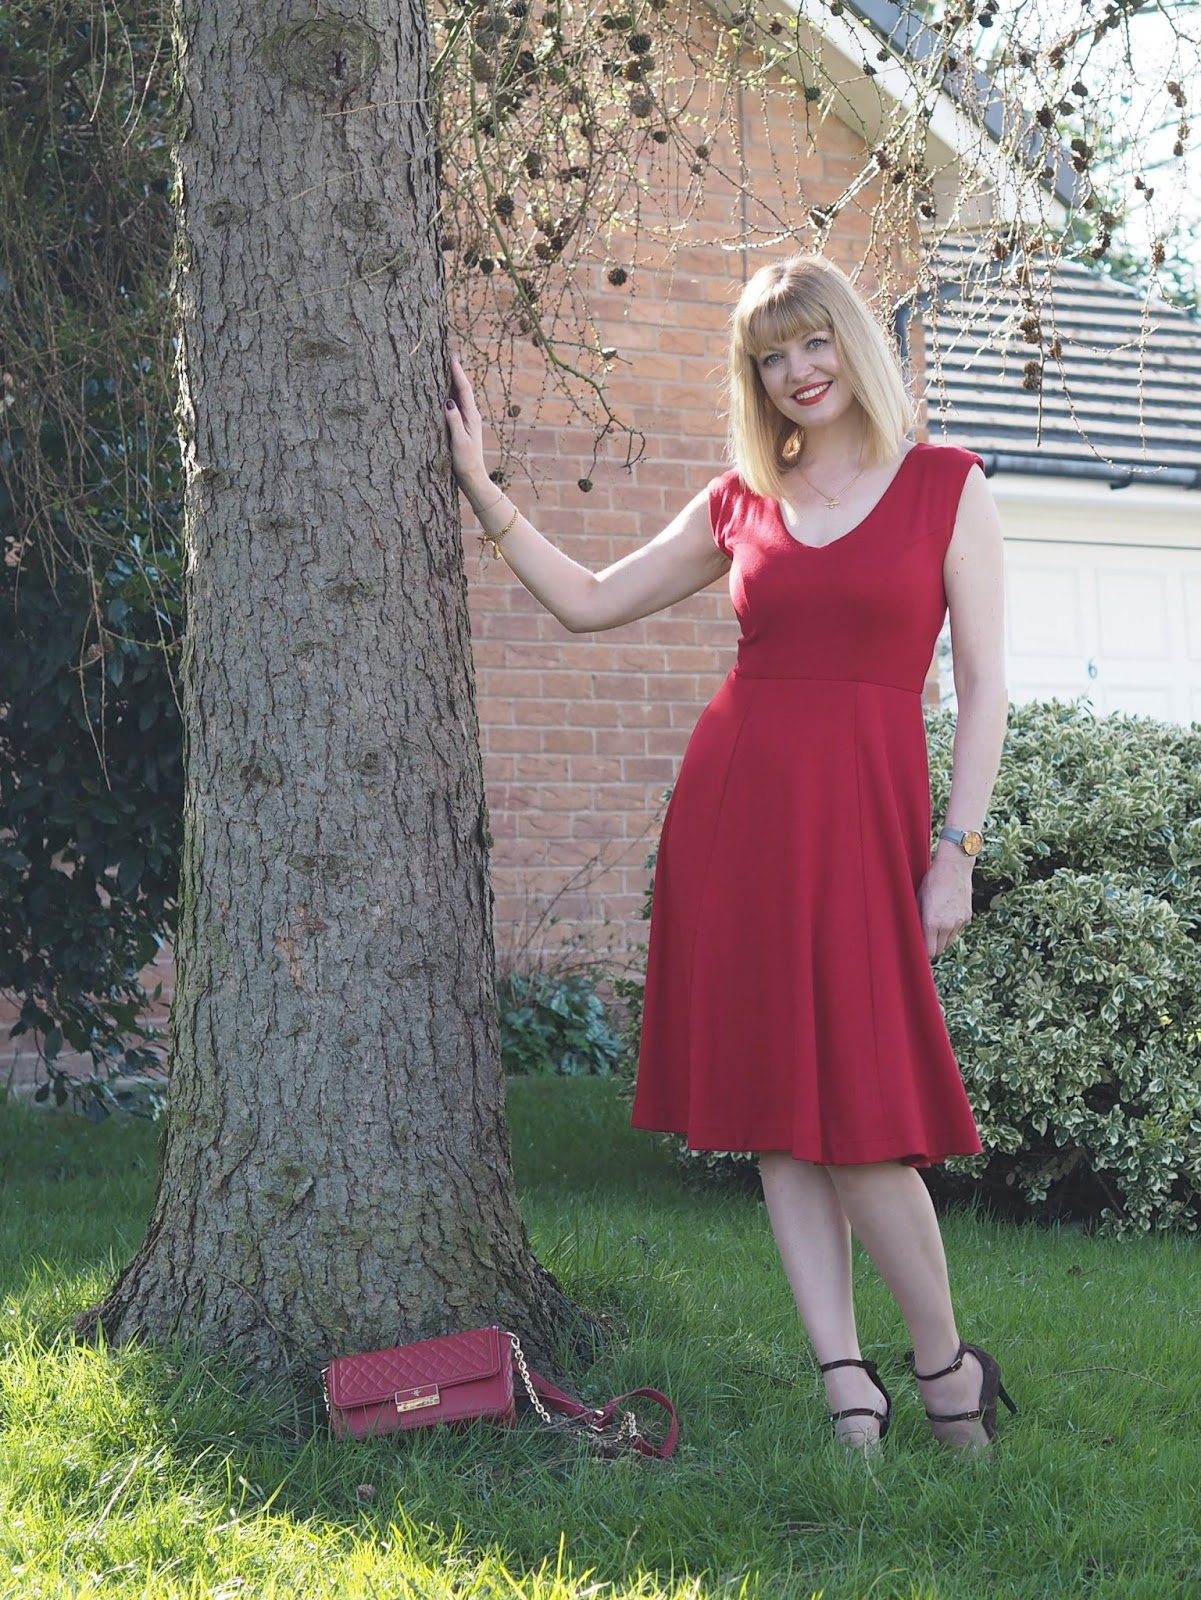 Alie Street fifties style chilli red Olivia dress with gold bee jewellery